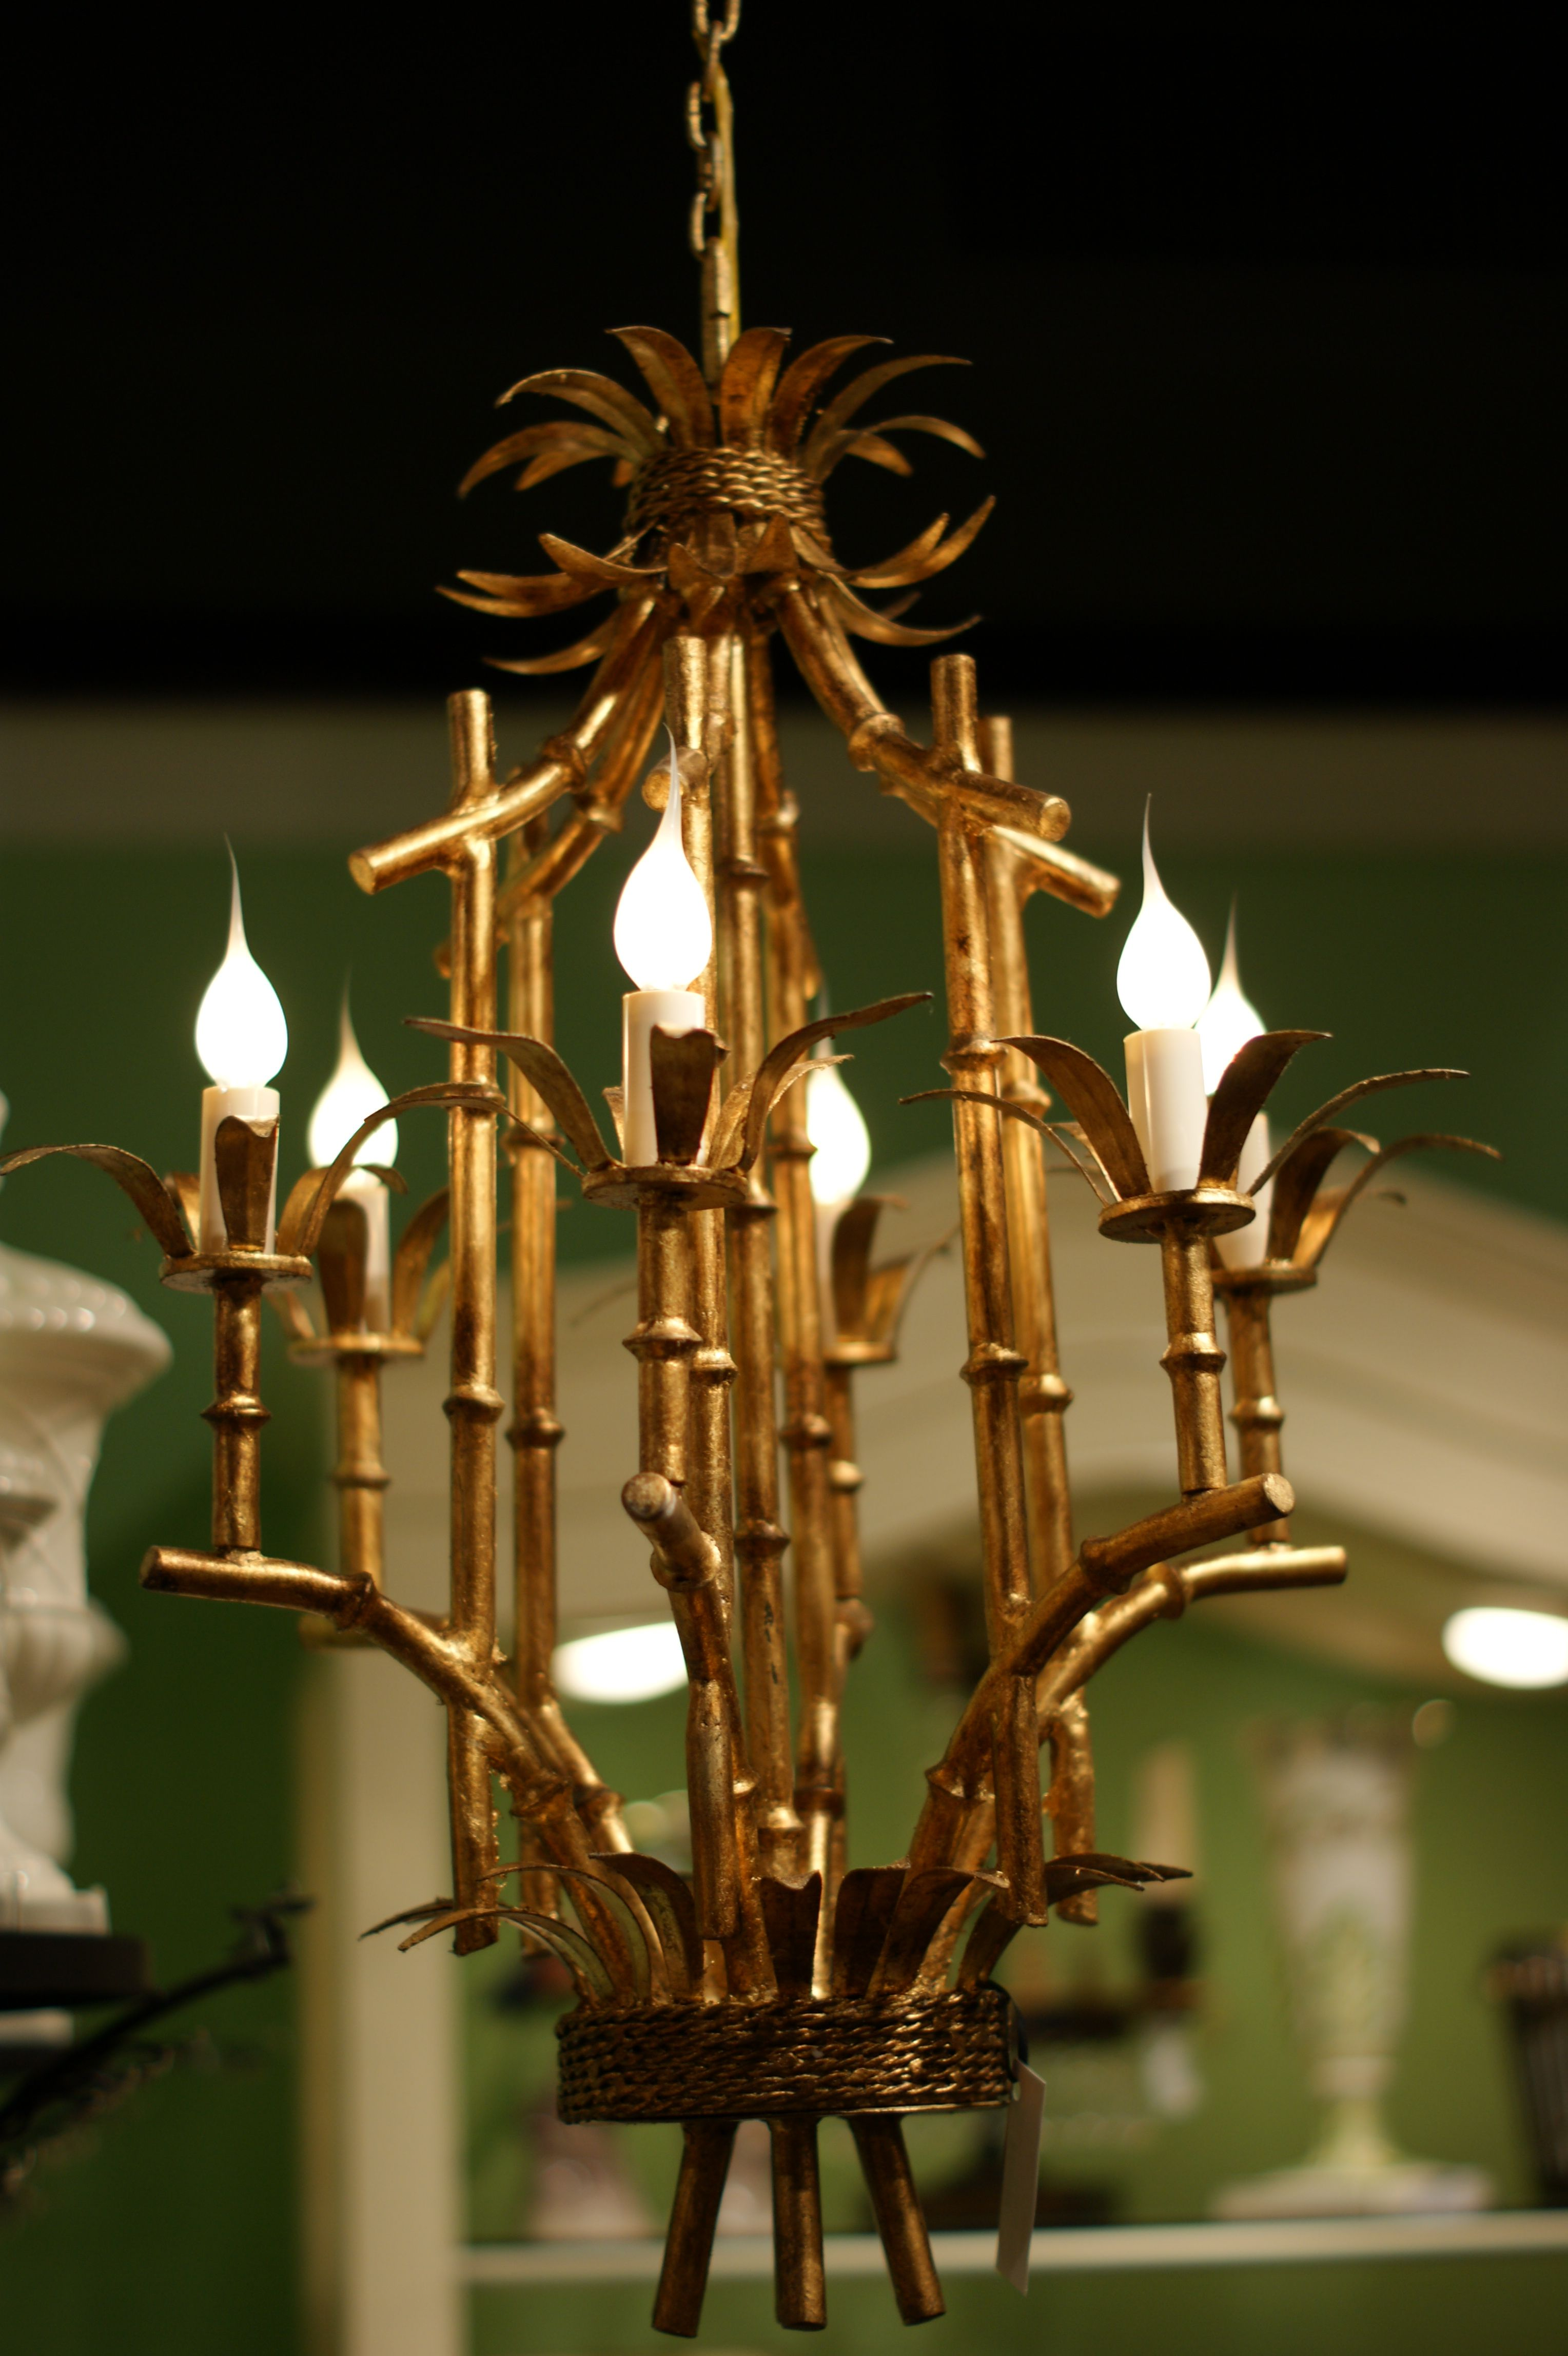 Cool bamboo chandelier ships from williamsburg va adorable and cool bamboo chandelier ships from williamsburg va adorable and affordable aloadofball Image collections